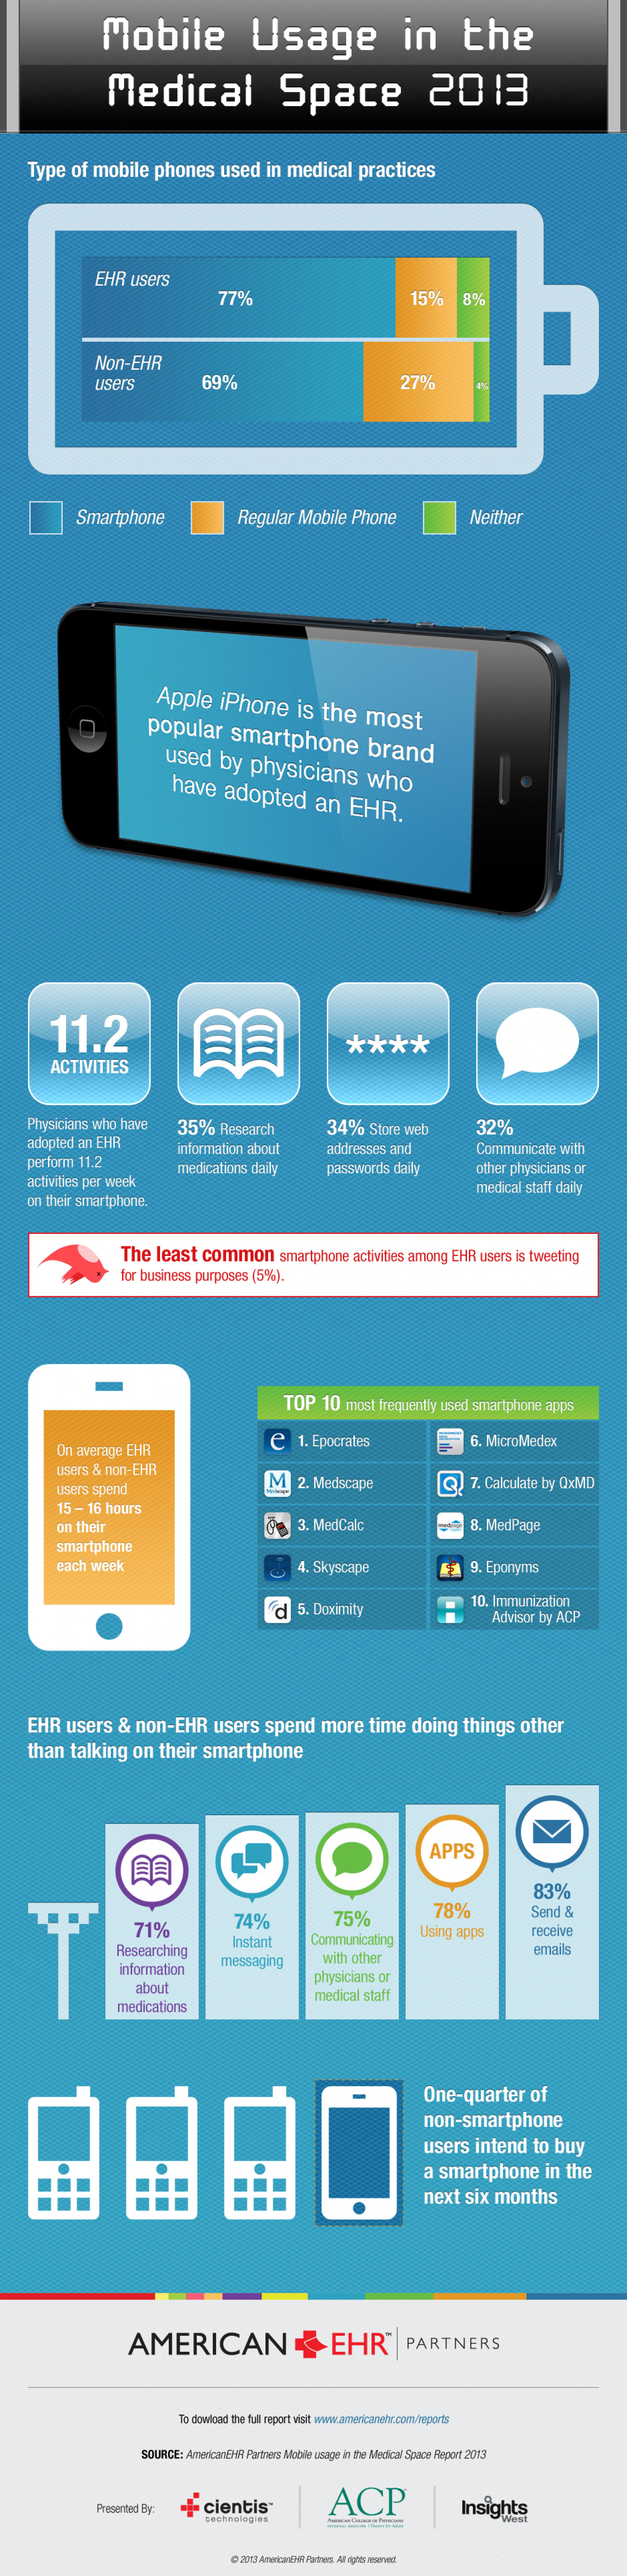 Mobile Usage in the Medical Space Infographic